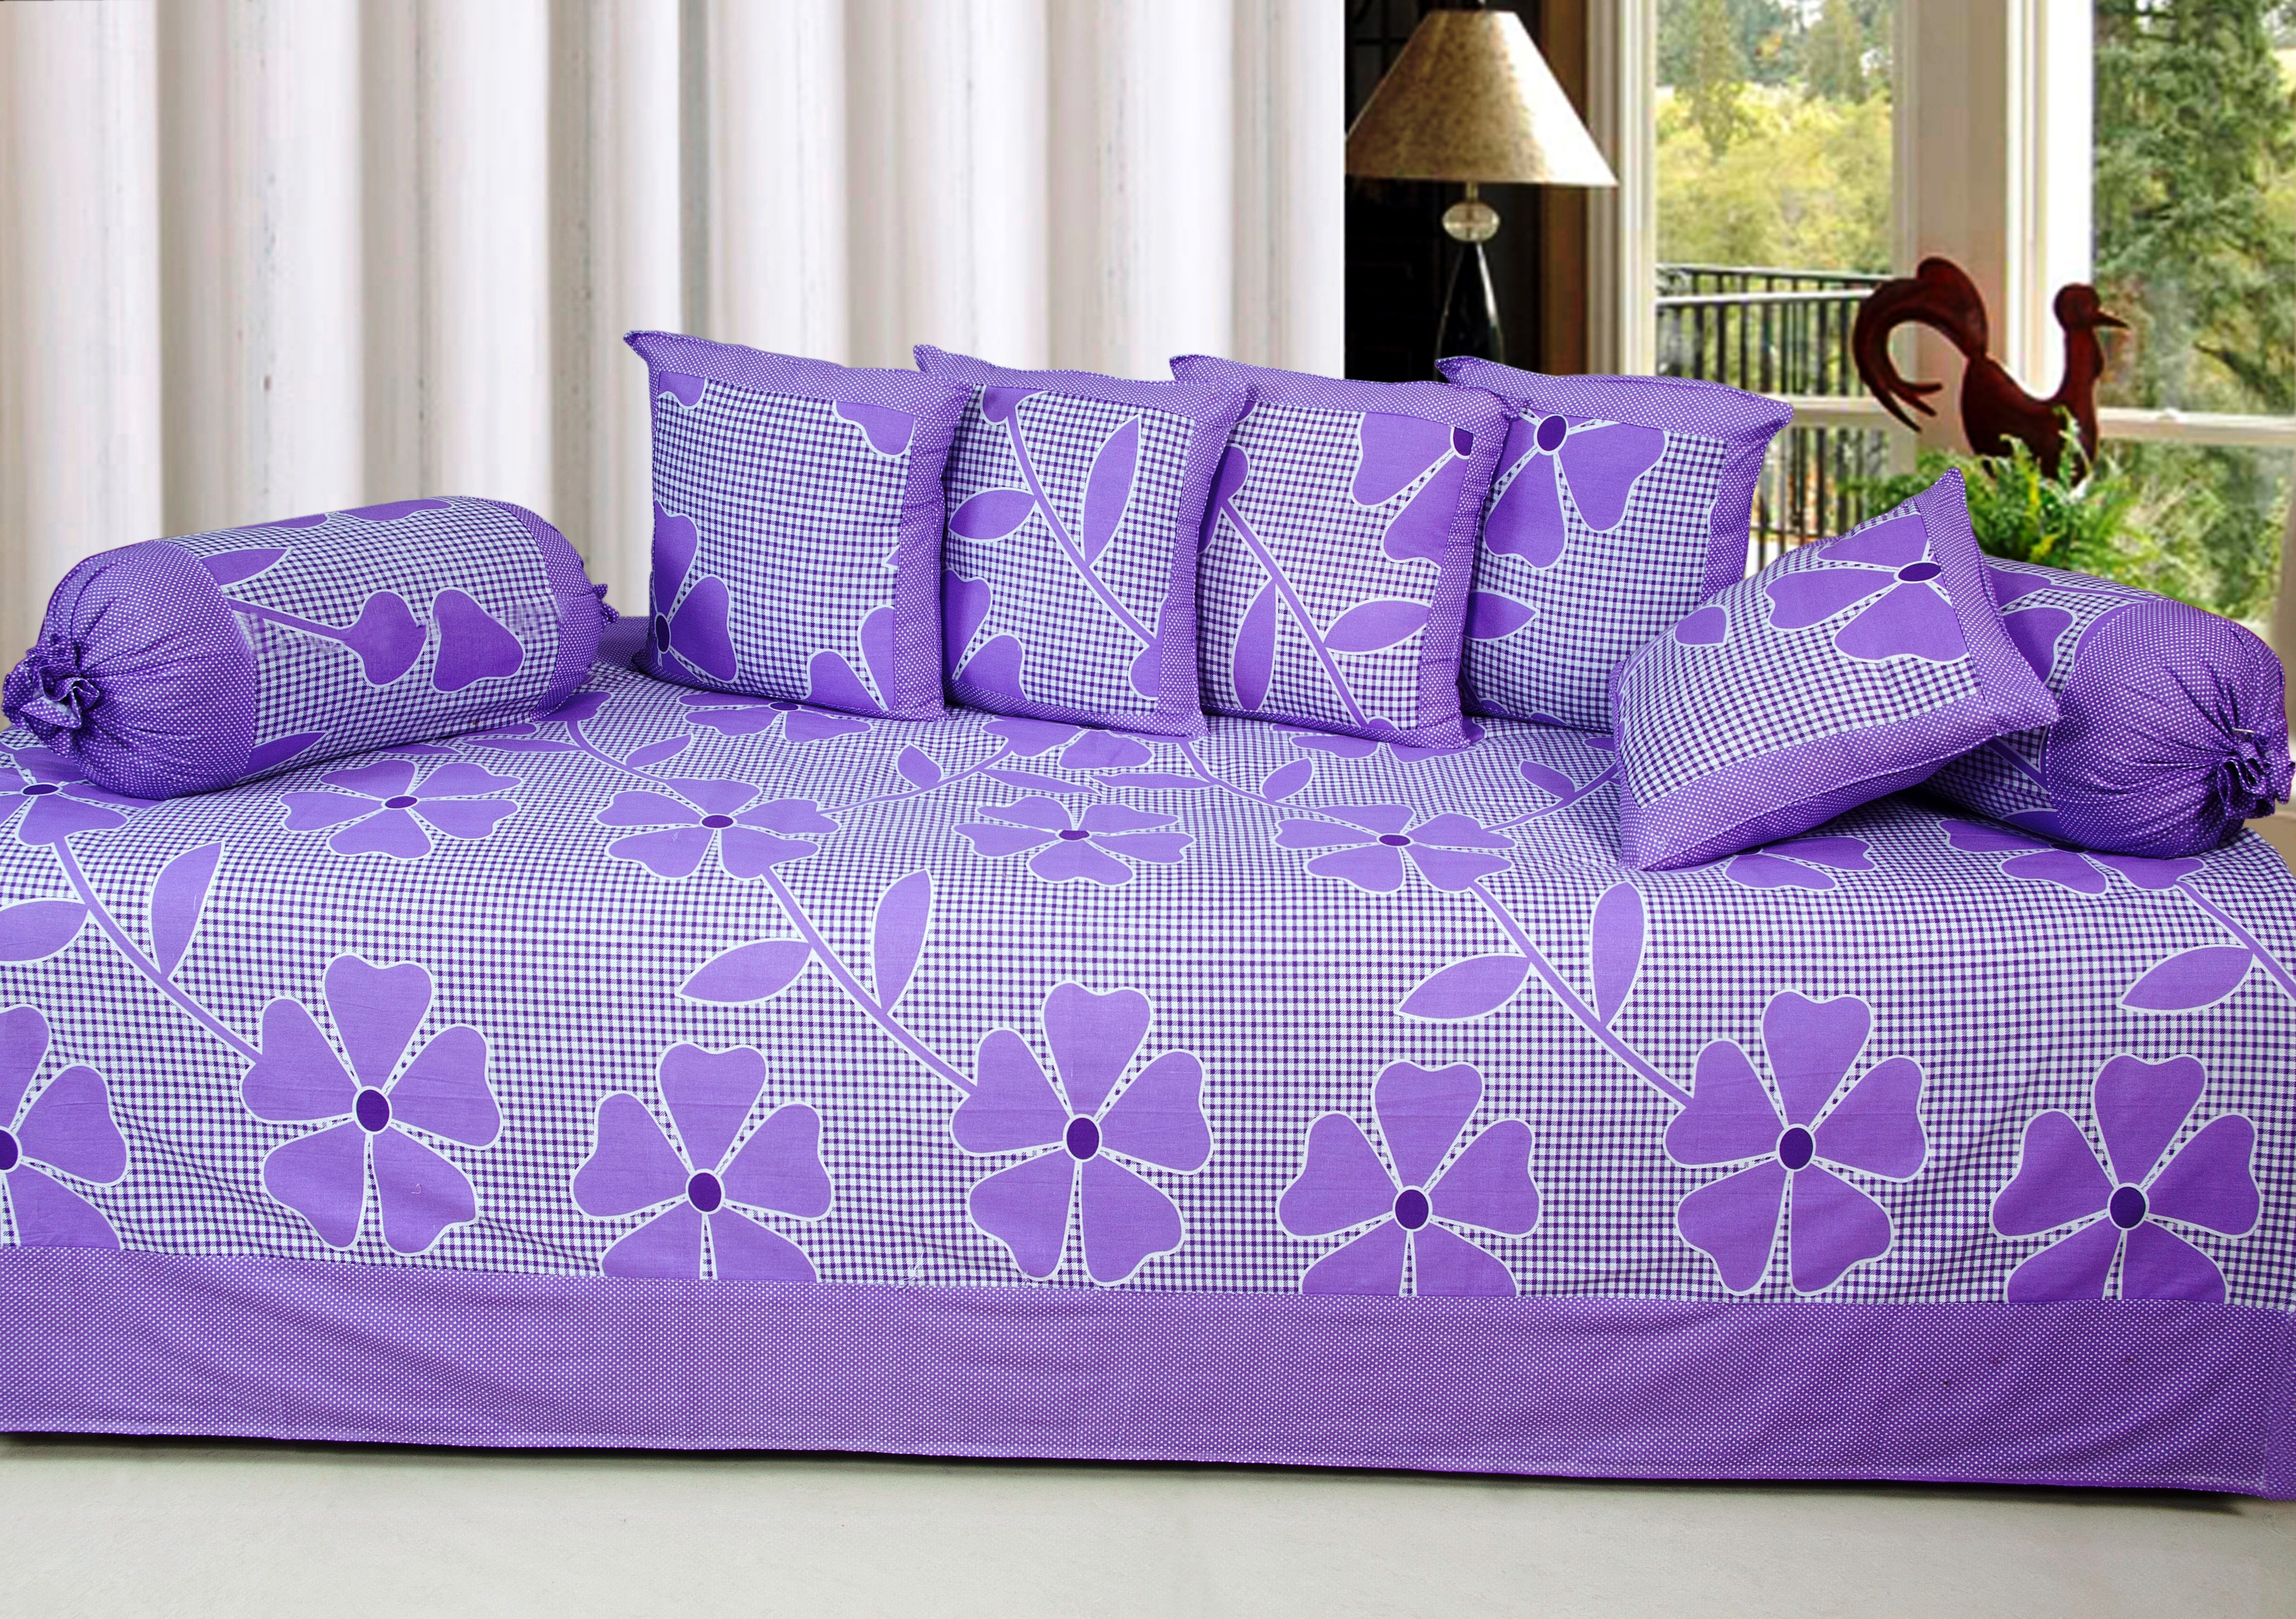 Optimistic Home Furnishing Cotton Floral Diwan Set